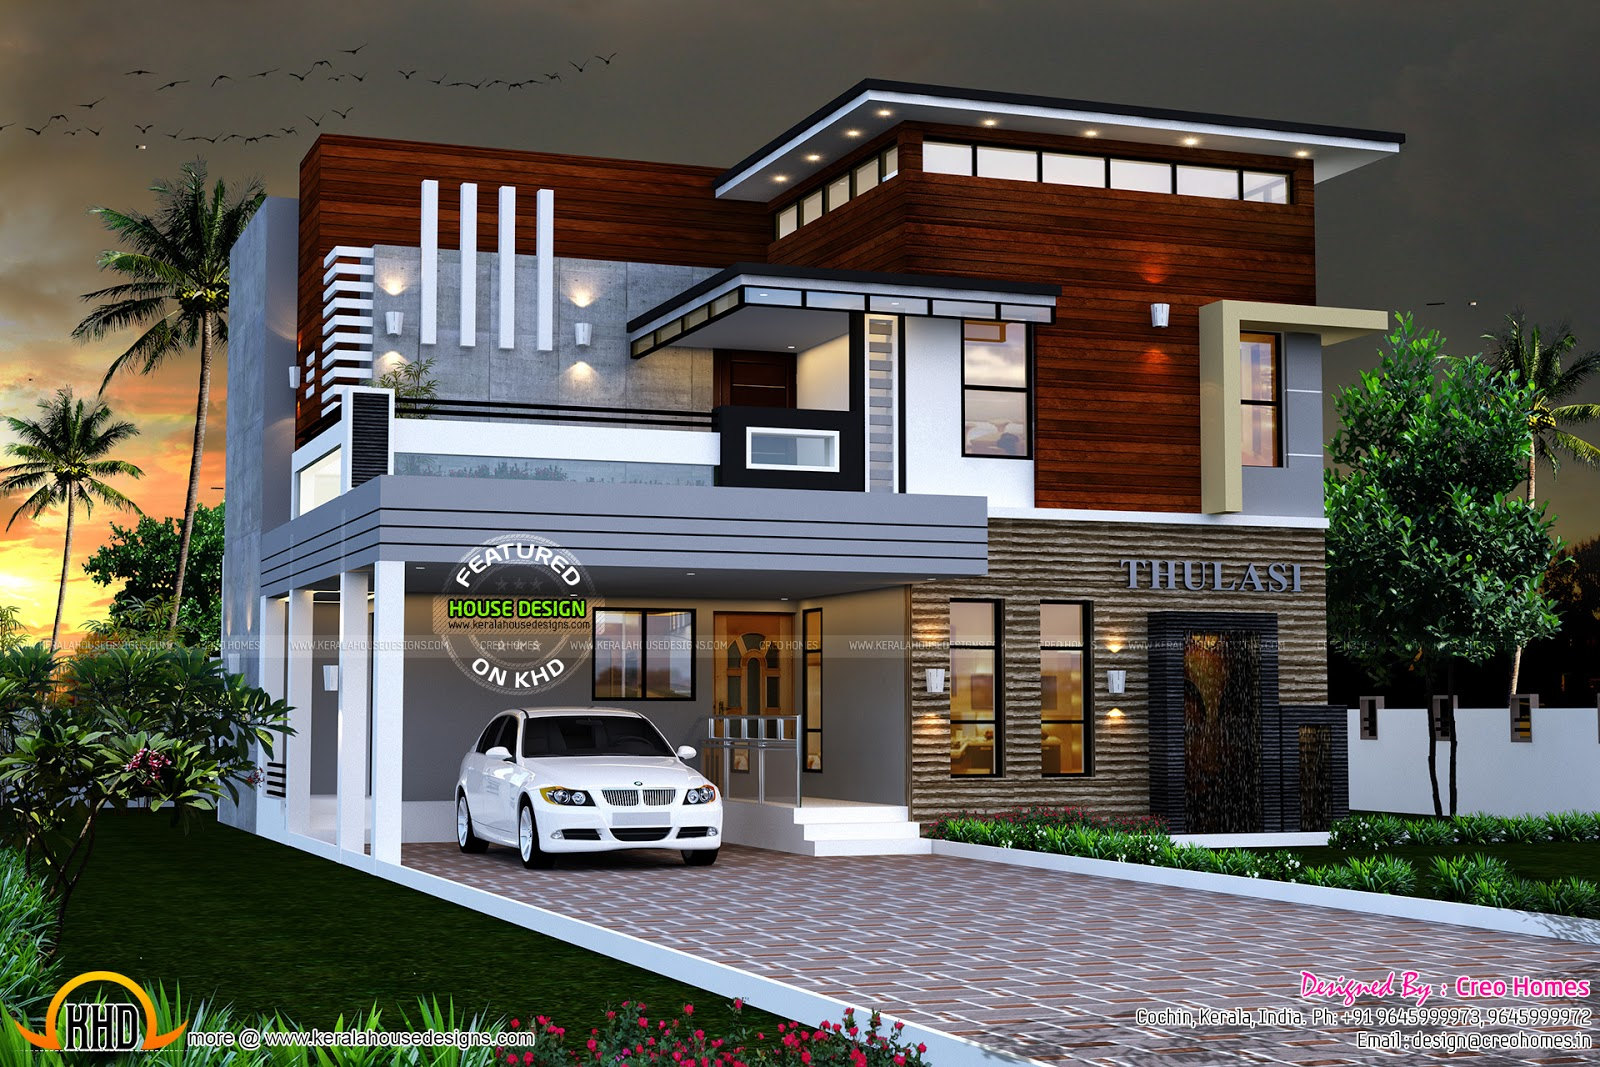 design and construction of house in Find and save ideas about construction logo on pinterest | see more ideas about construction company logo, construction logo design and construction branding.